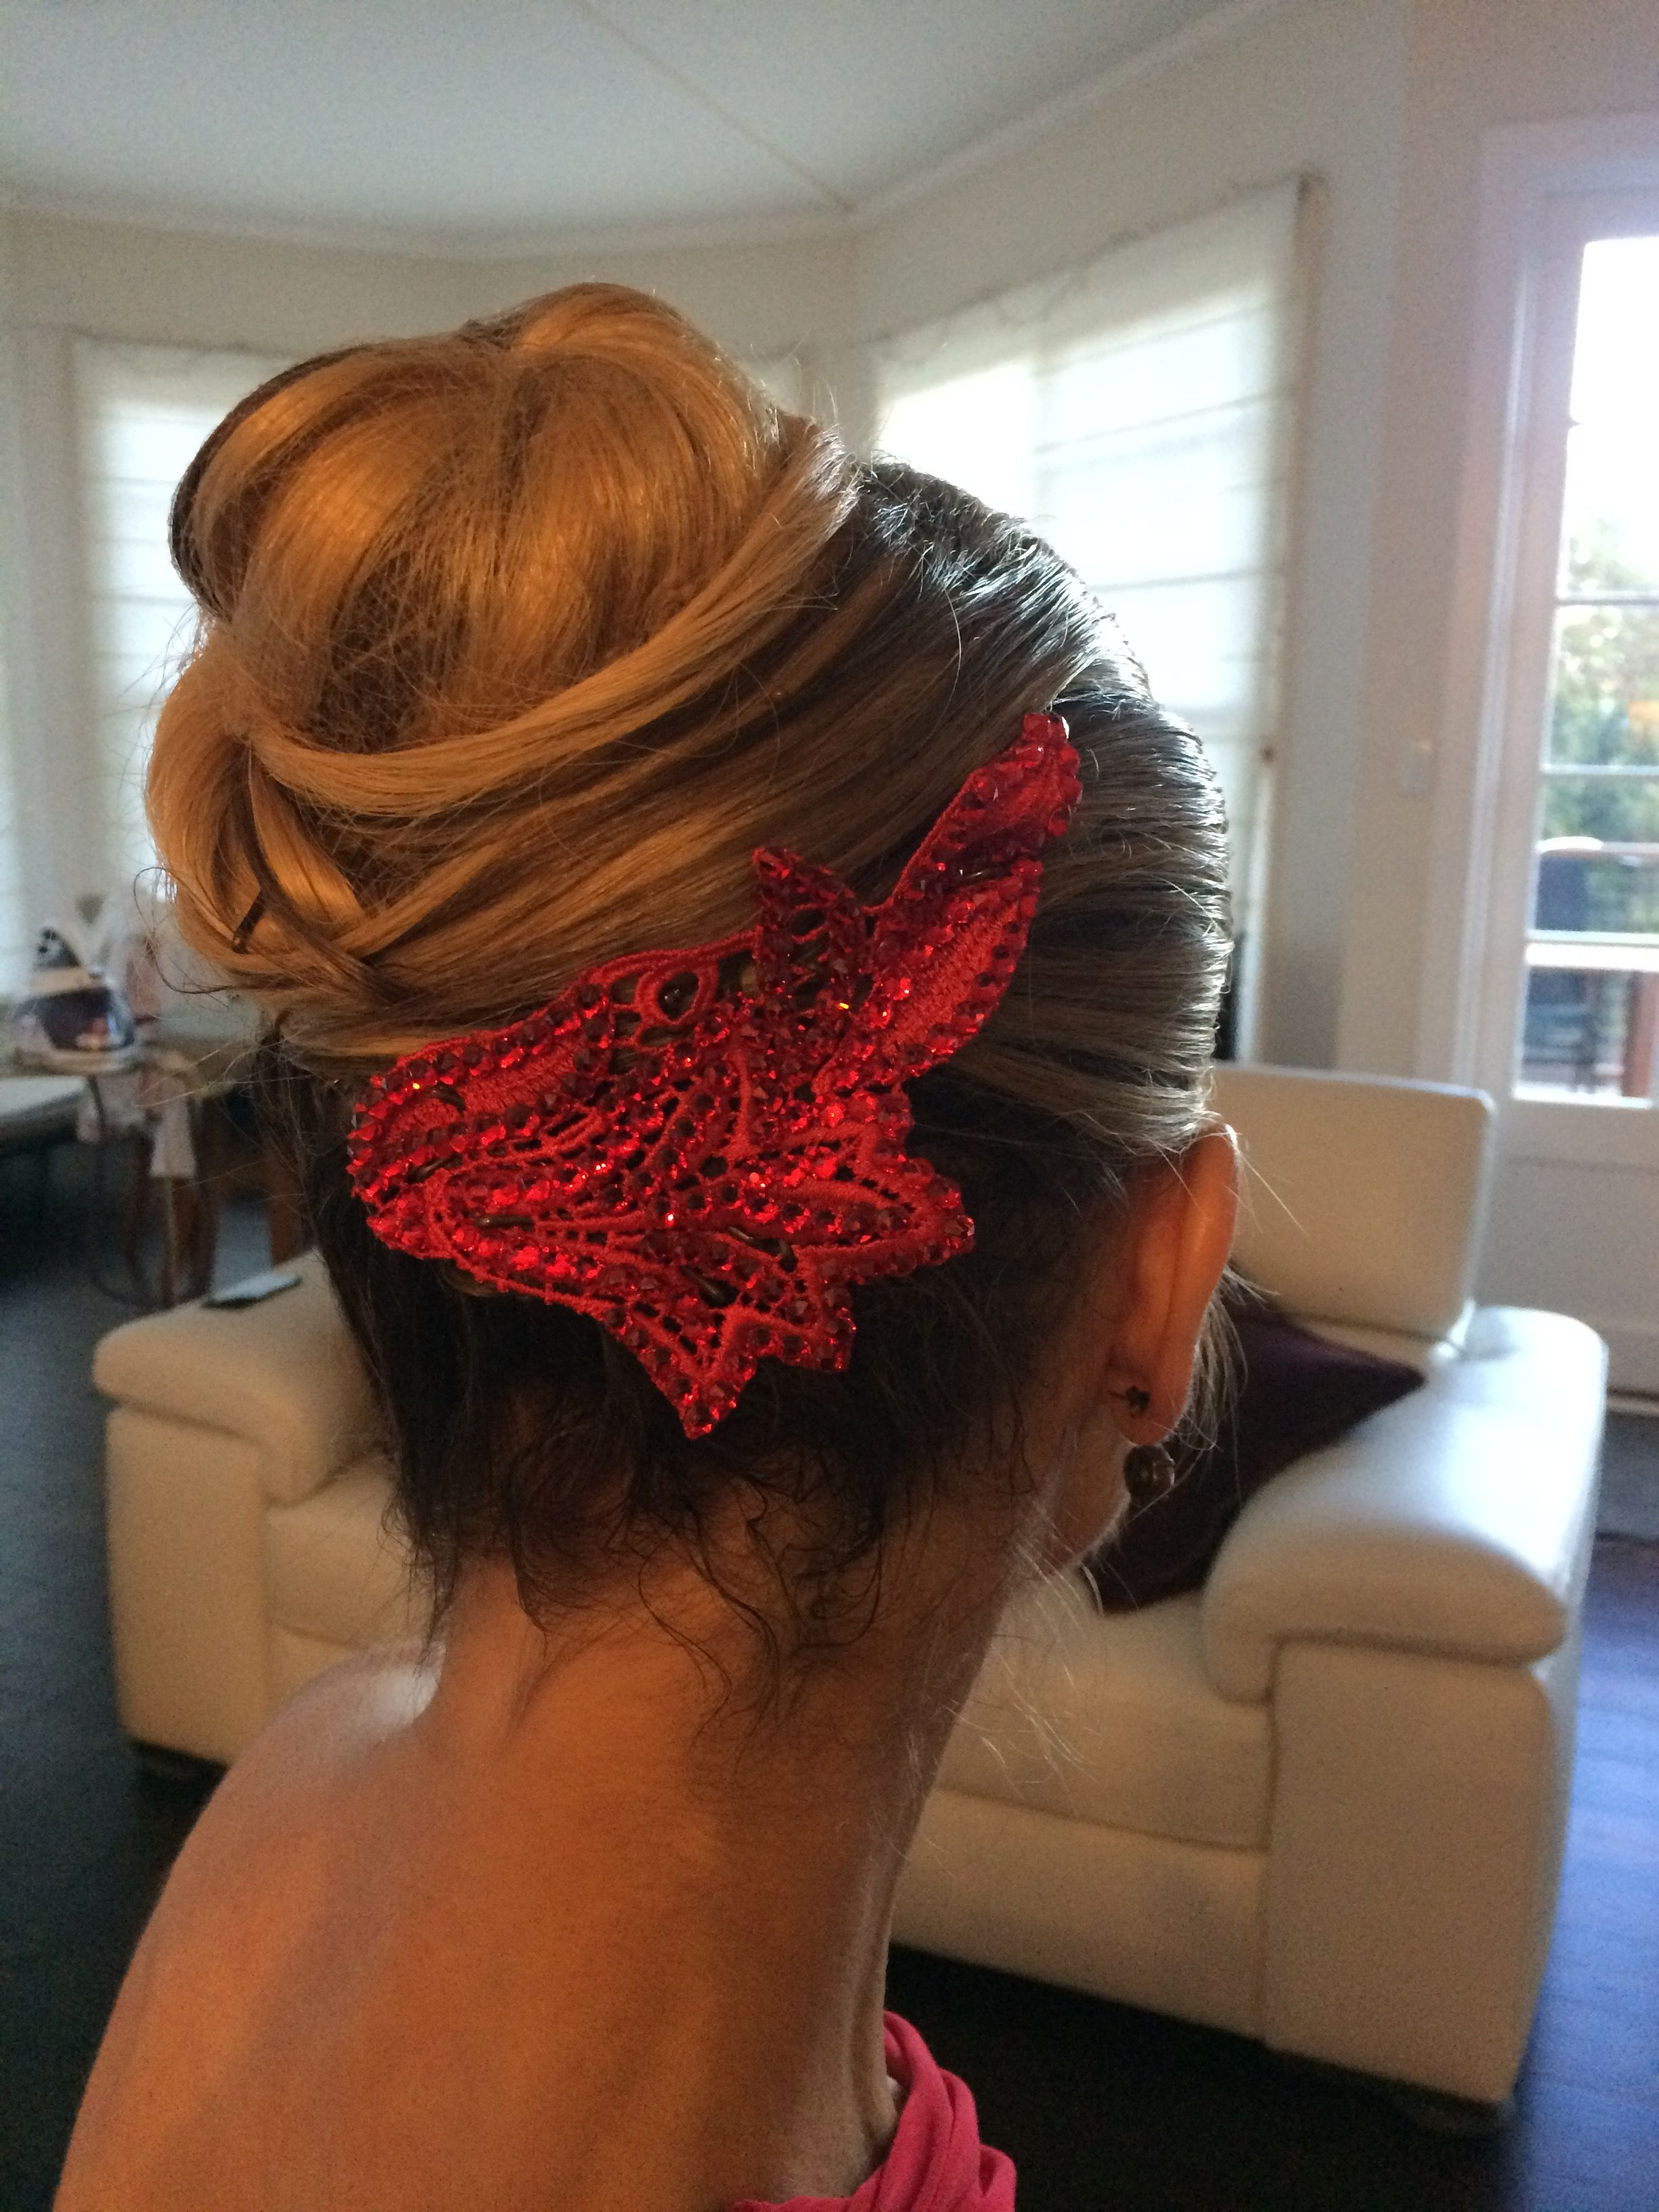 dance hair style worked beautifully for argentine tango